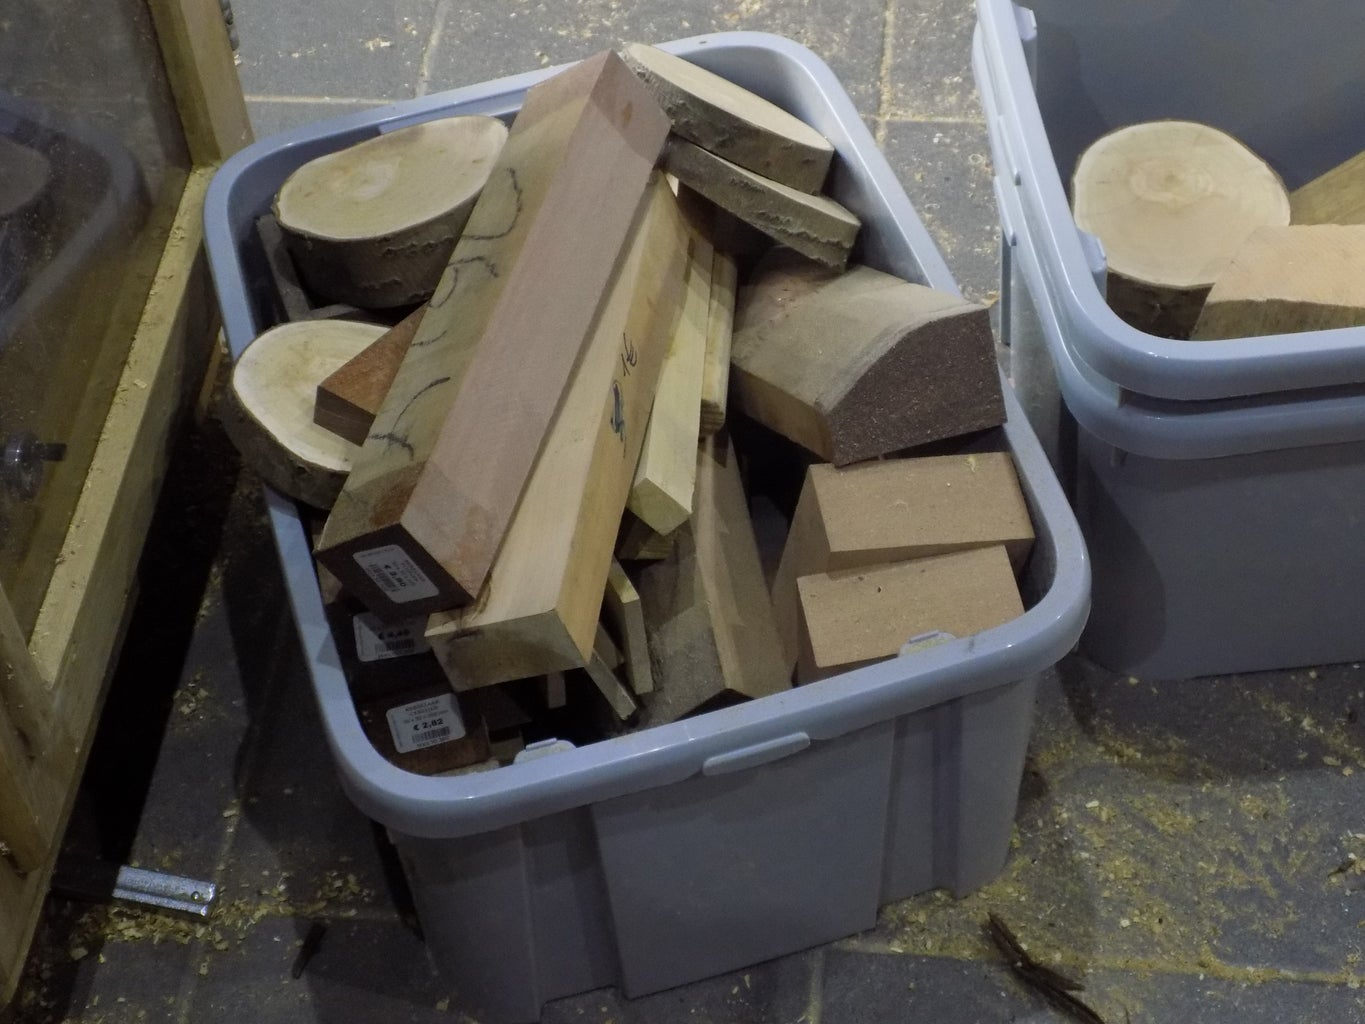 Find Some Nice Wood and Make the First Shapes